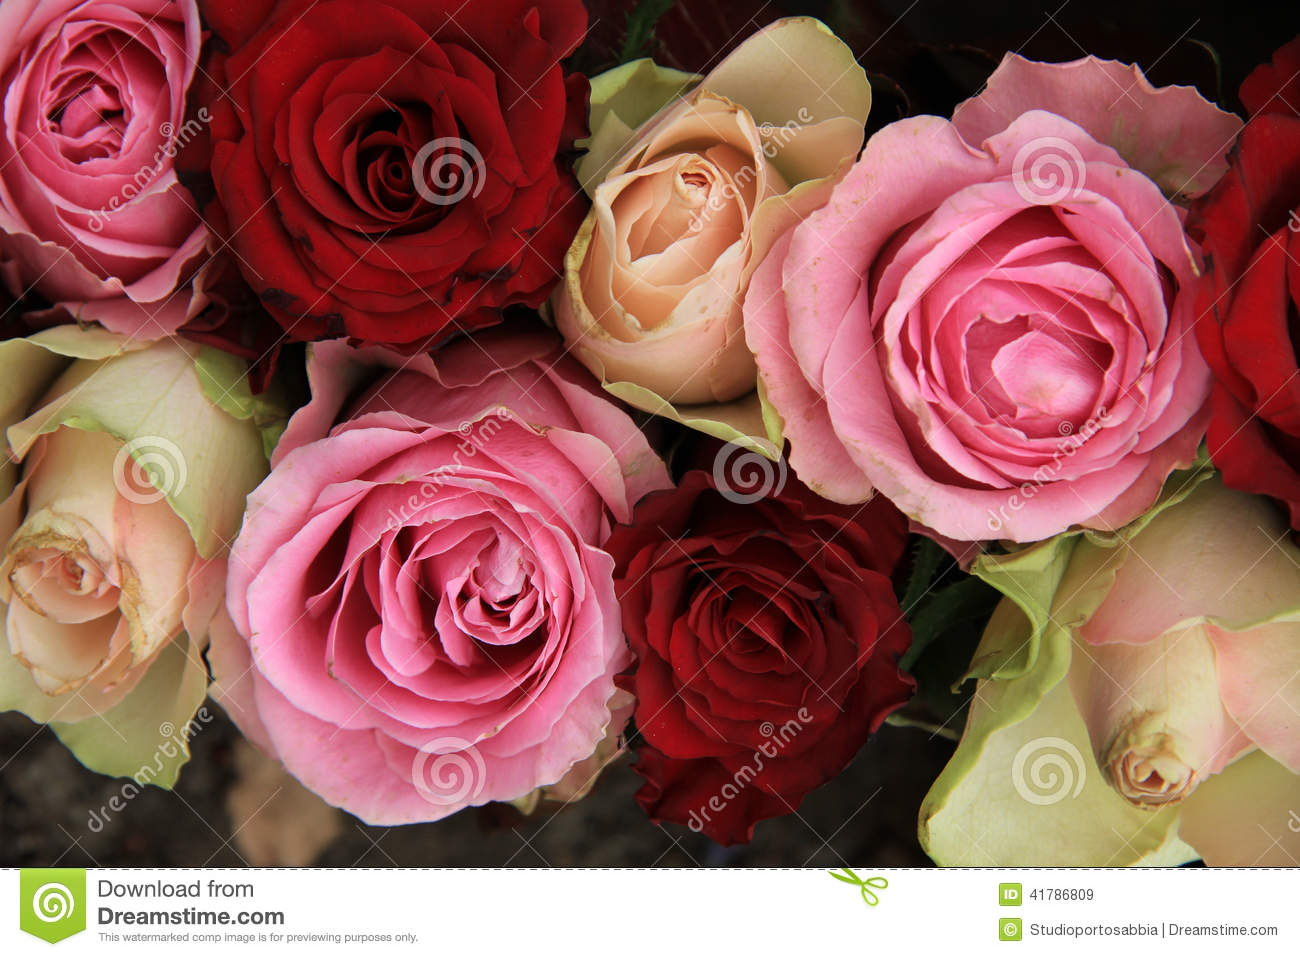 Wedding Flowers In Pink And Red Stock Image - Image of centerpiece ...